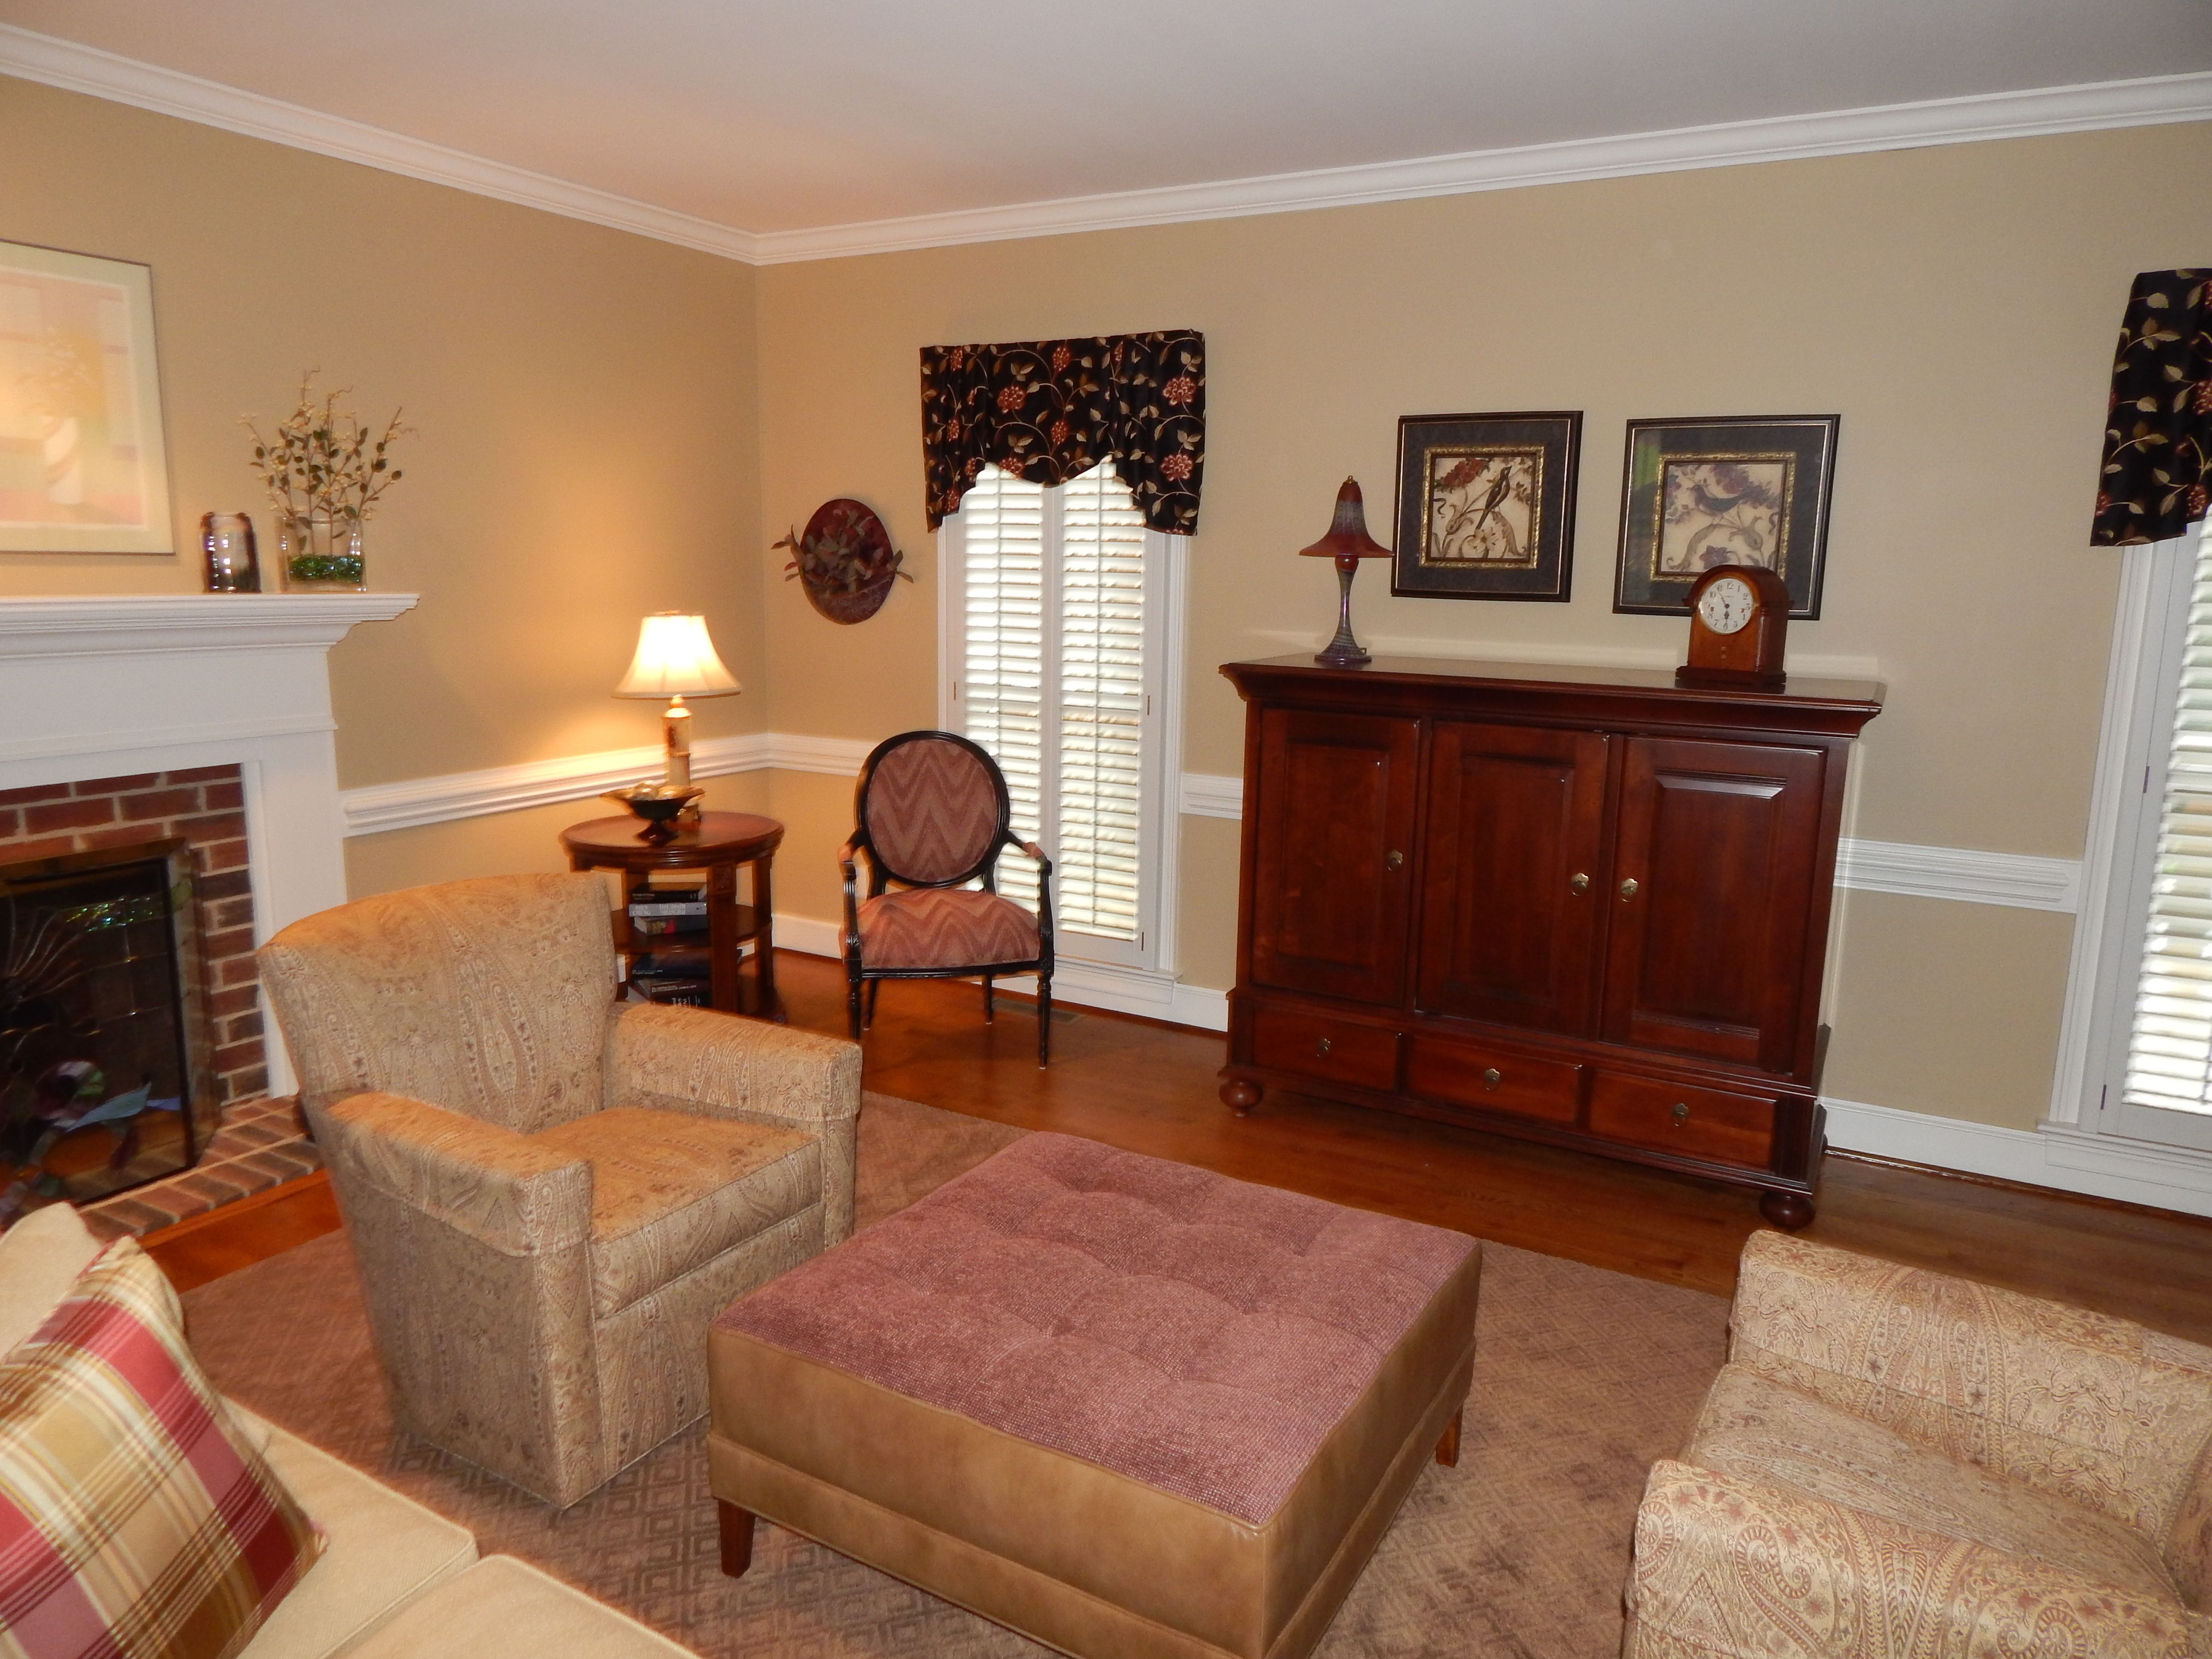 Ethan allen window treatments - Paramount Sofa With Two Turner Swivel Chairs With A Nassau Ottoman And Francesca Chair With The